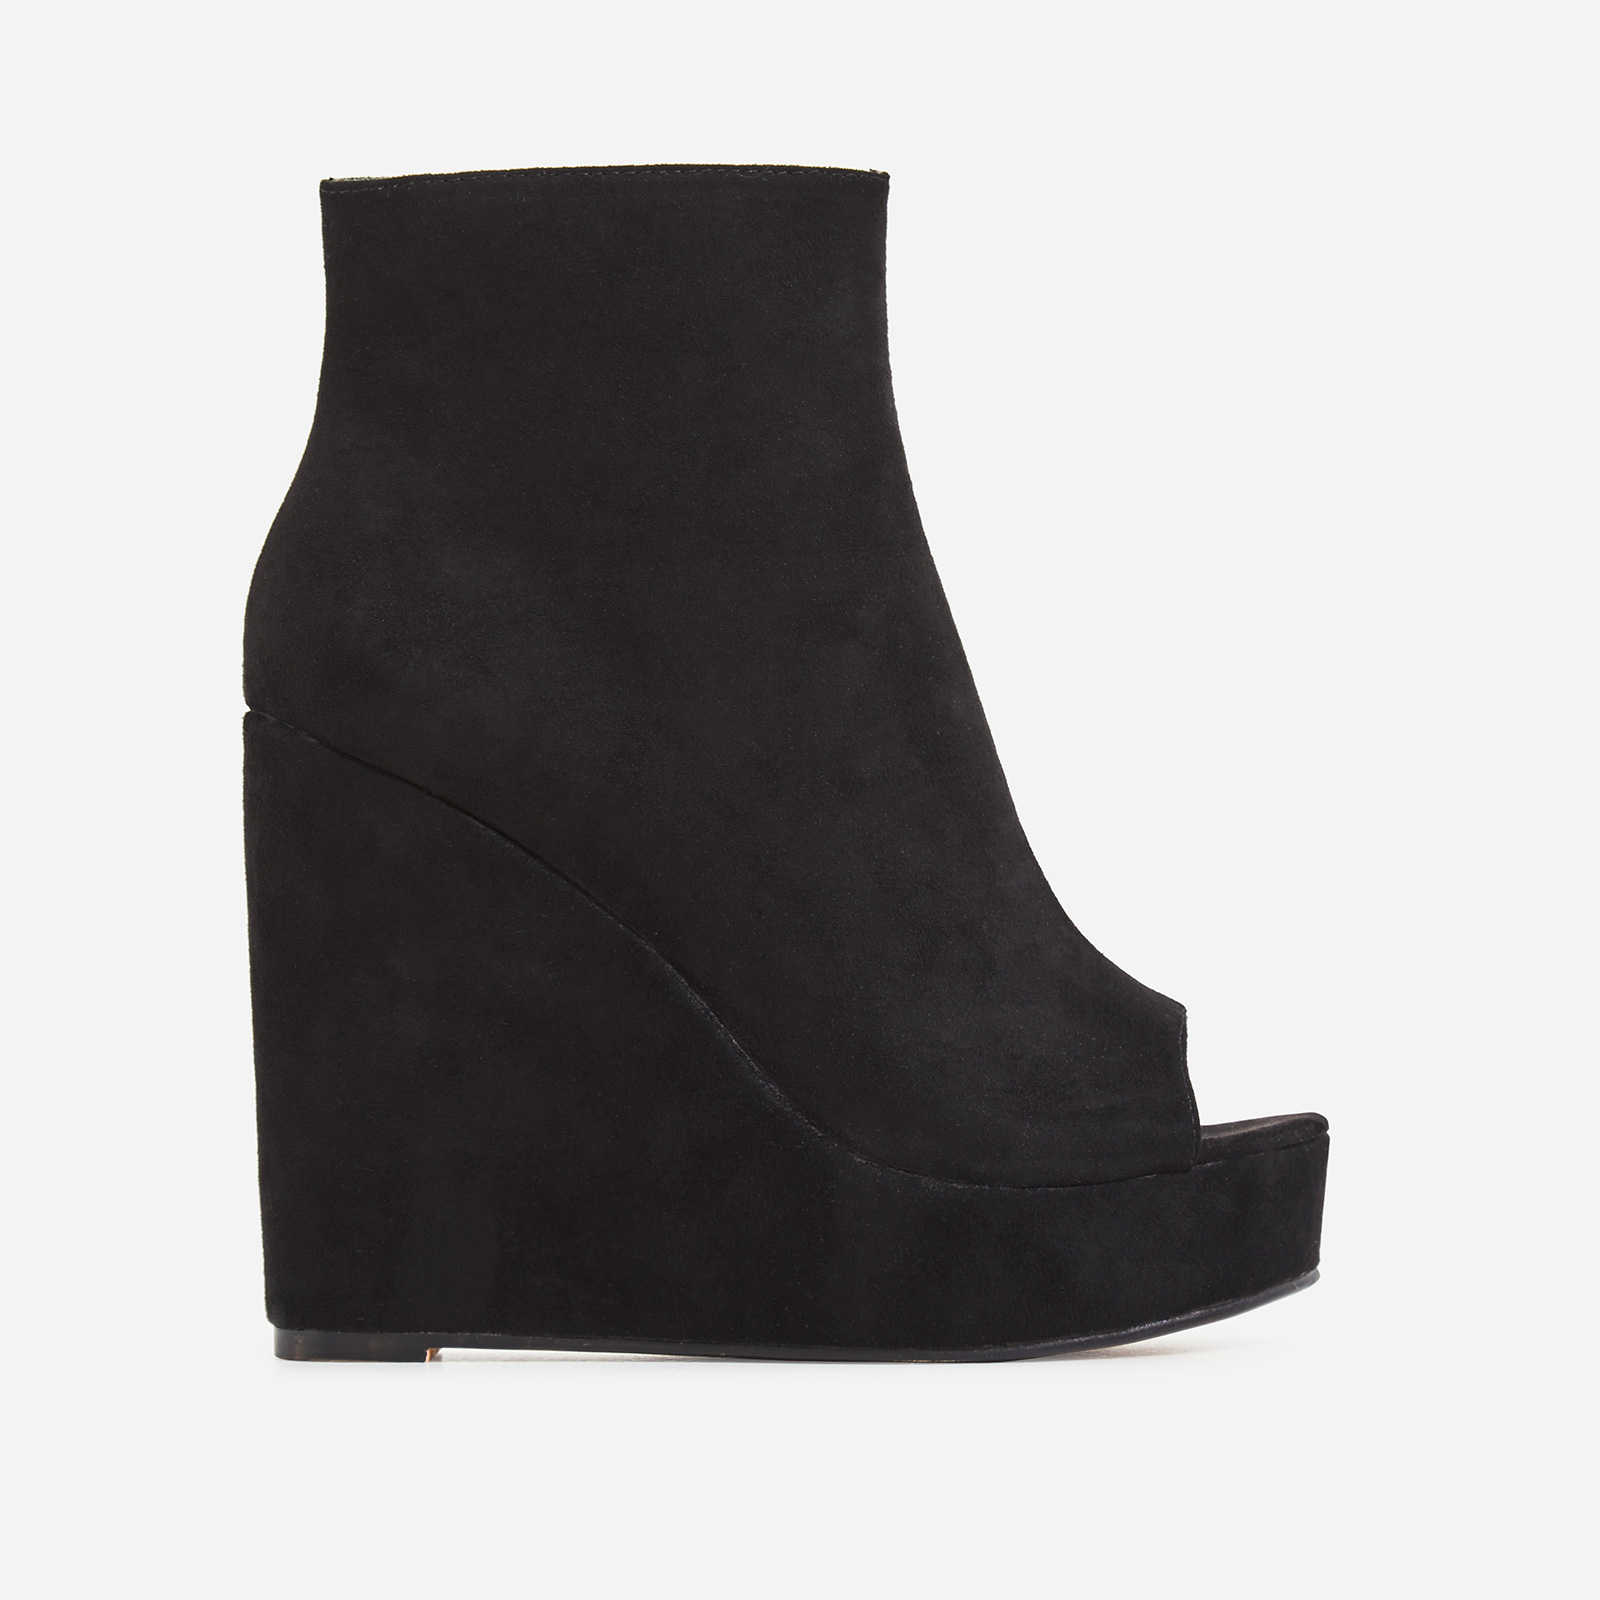 Khalid Peep Toe Platform Wedge Ankle Boot In Black Faux Suede